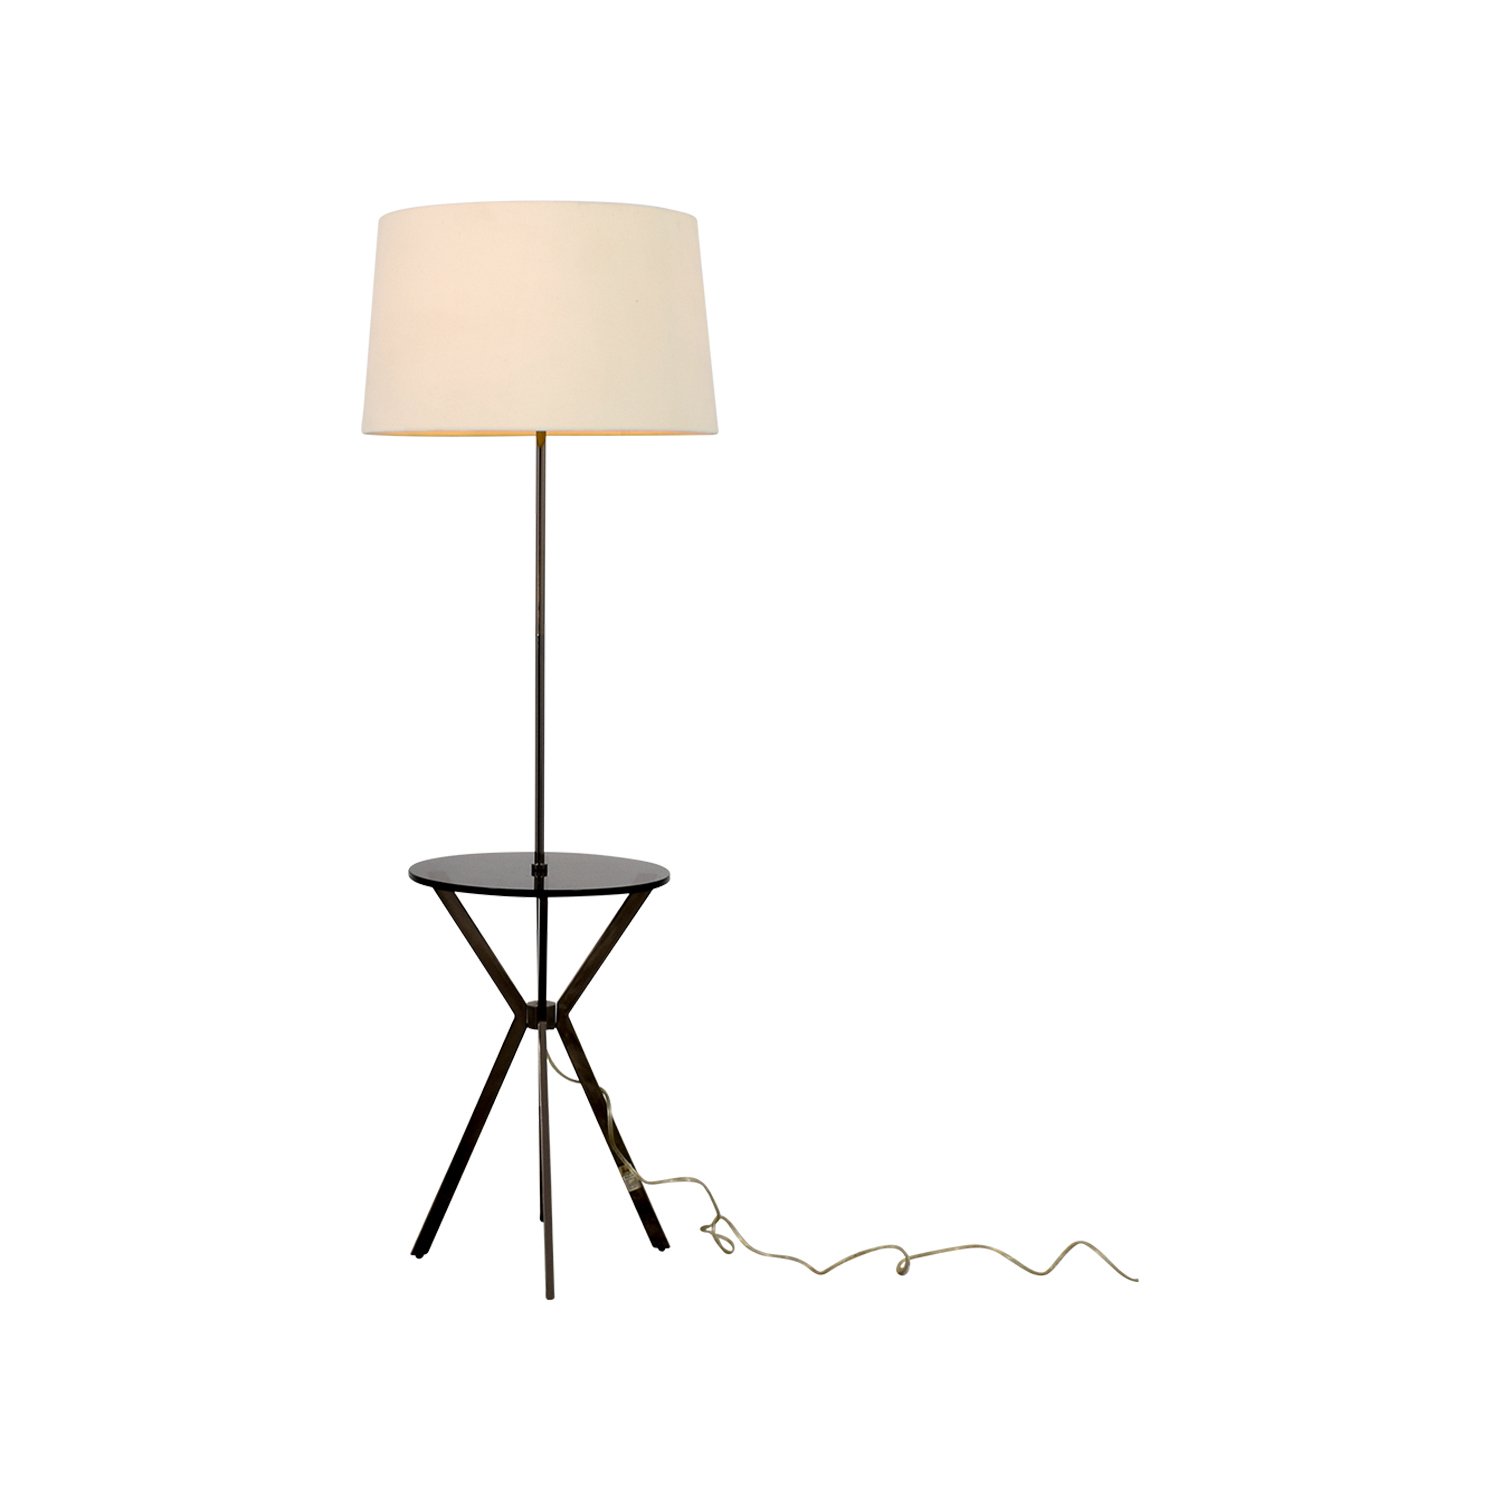 ... West Elm West Elm Floor Lamp With Table Attached Price ...